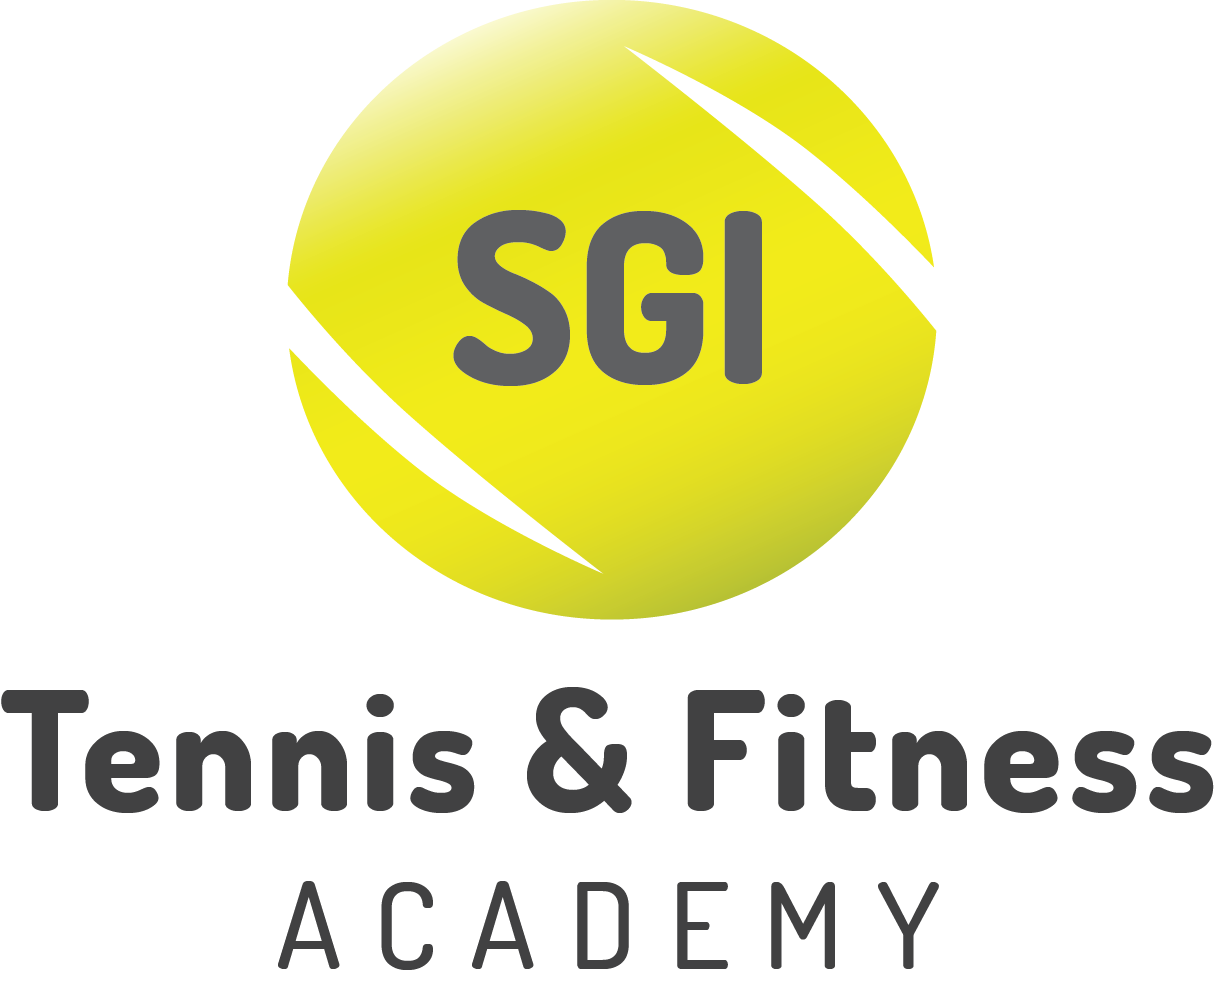 Photo SGI Tennis and Fitness Academy Logo